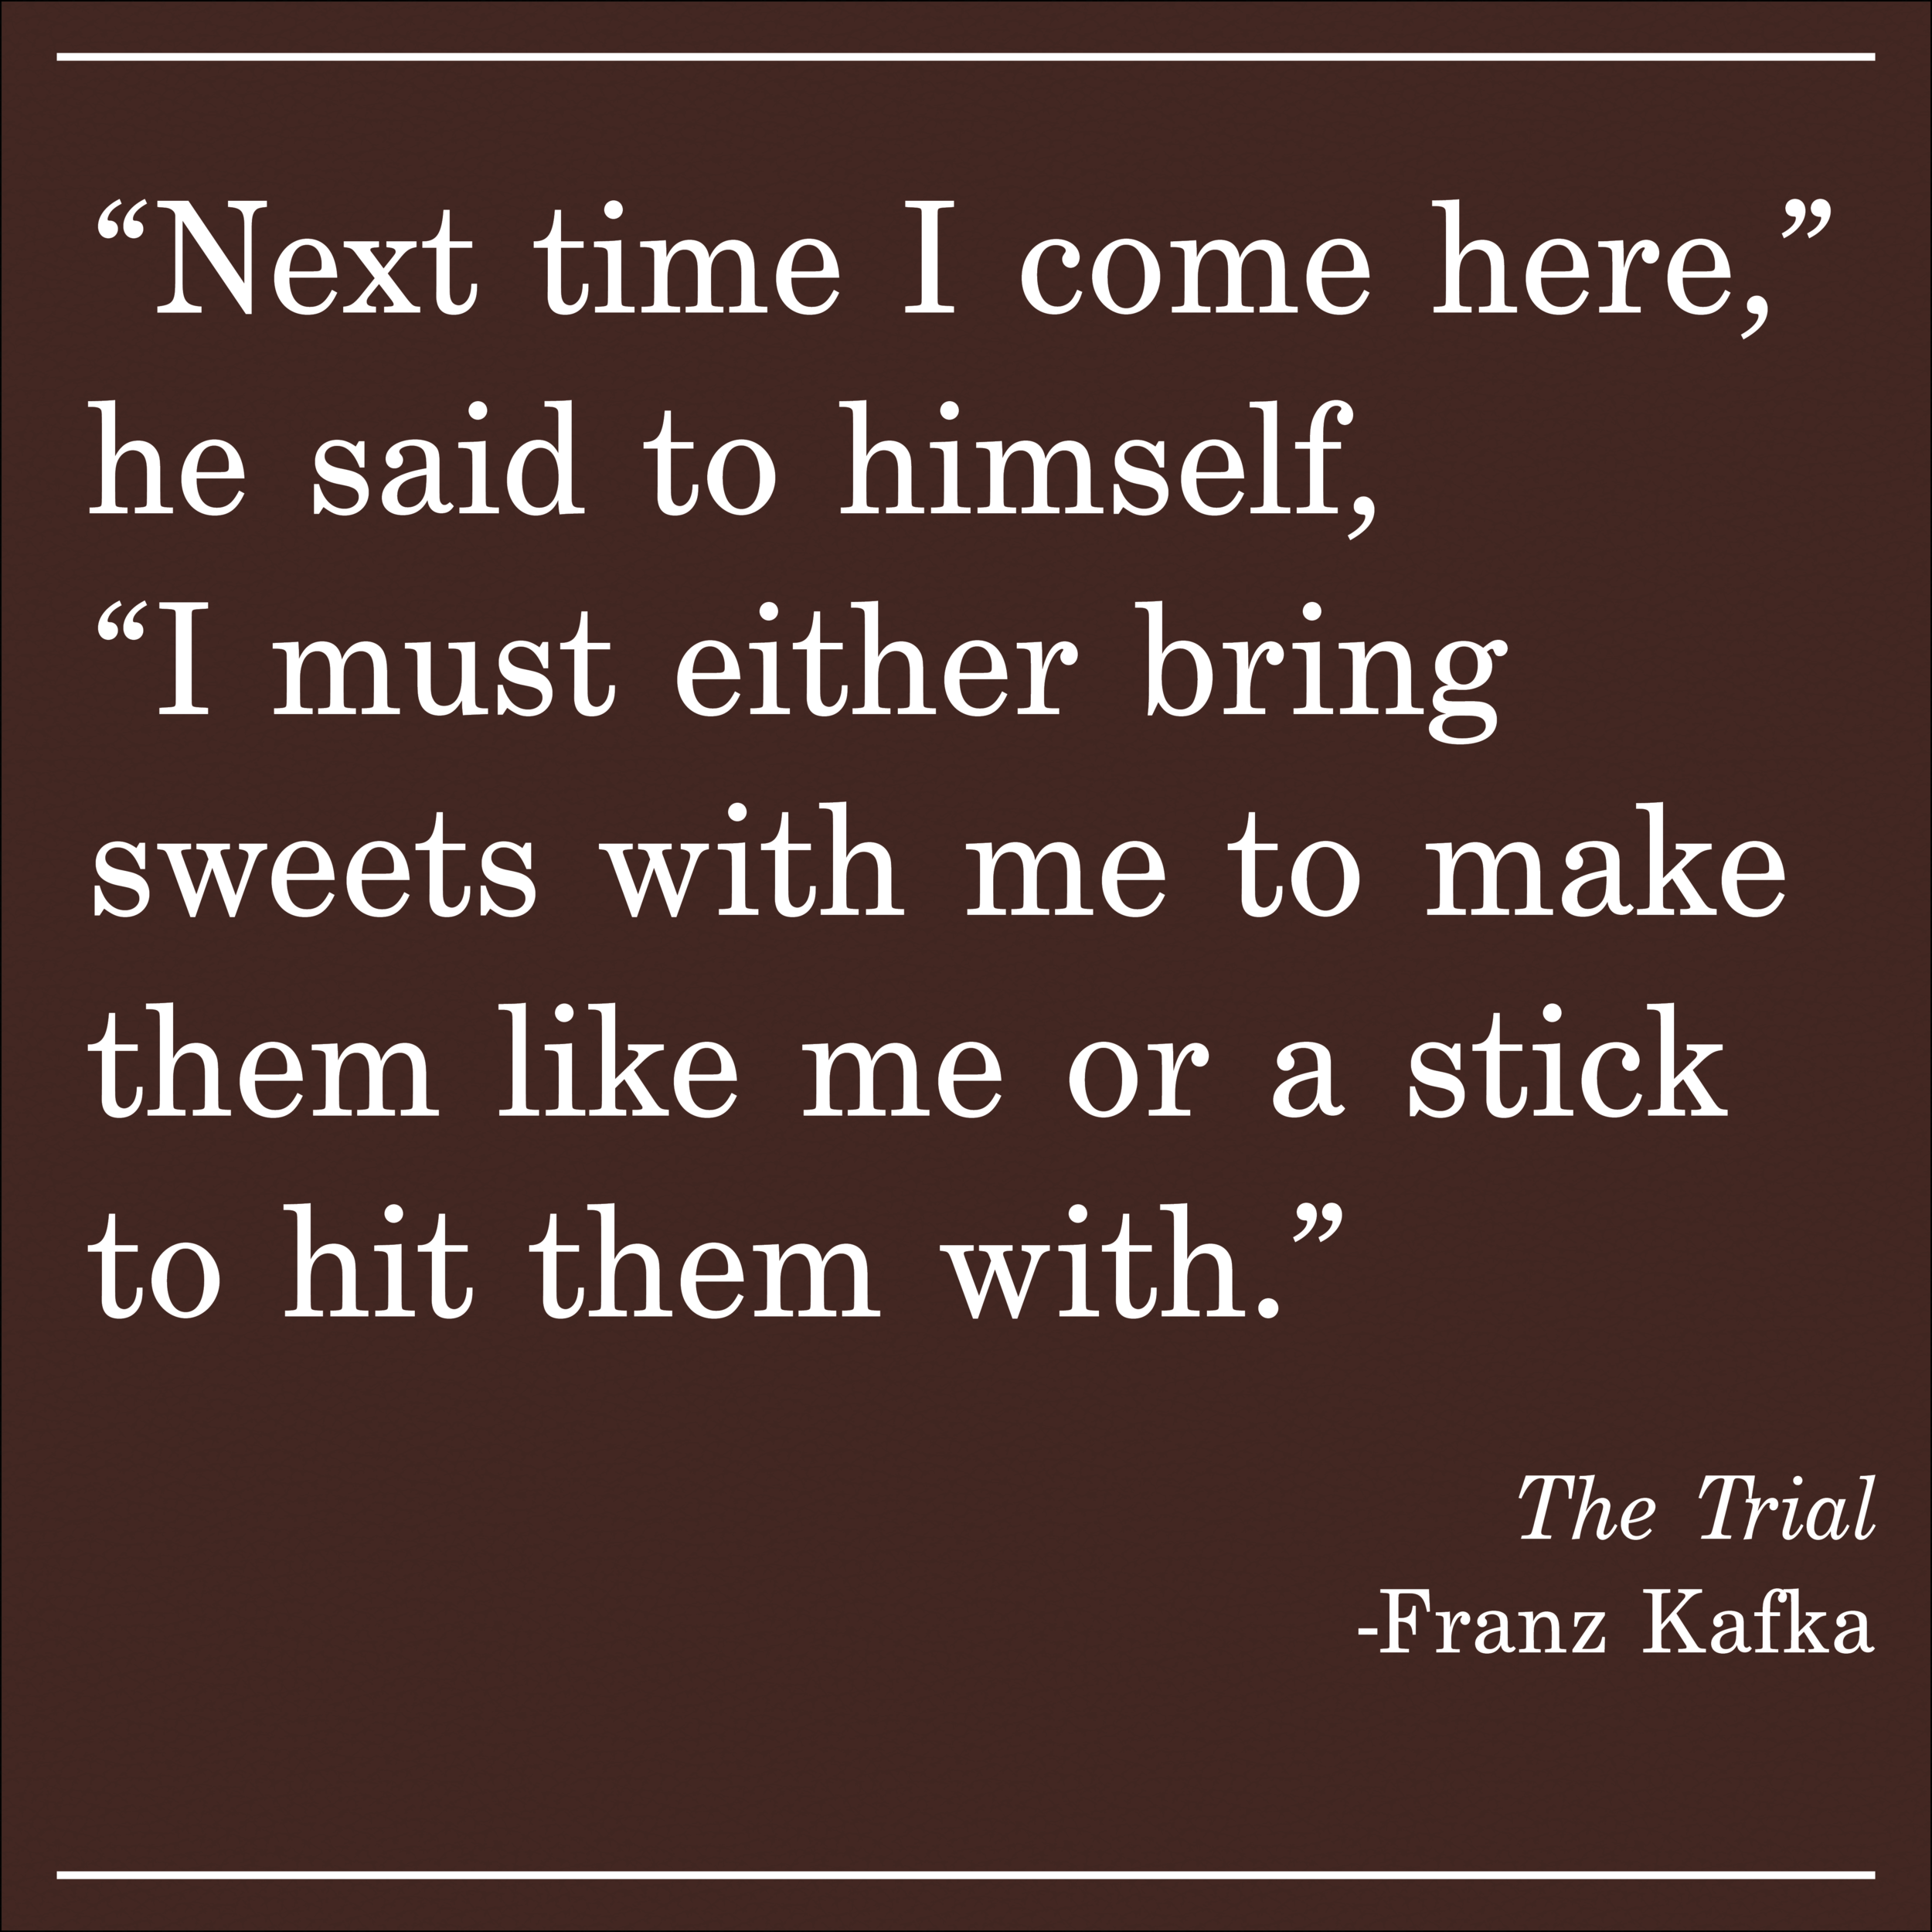 Daily Quote The Trial by Franz Kafka